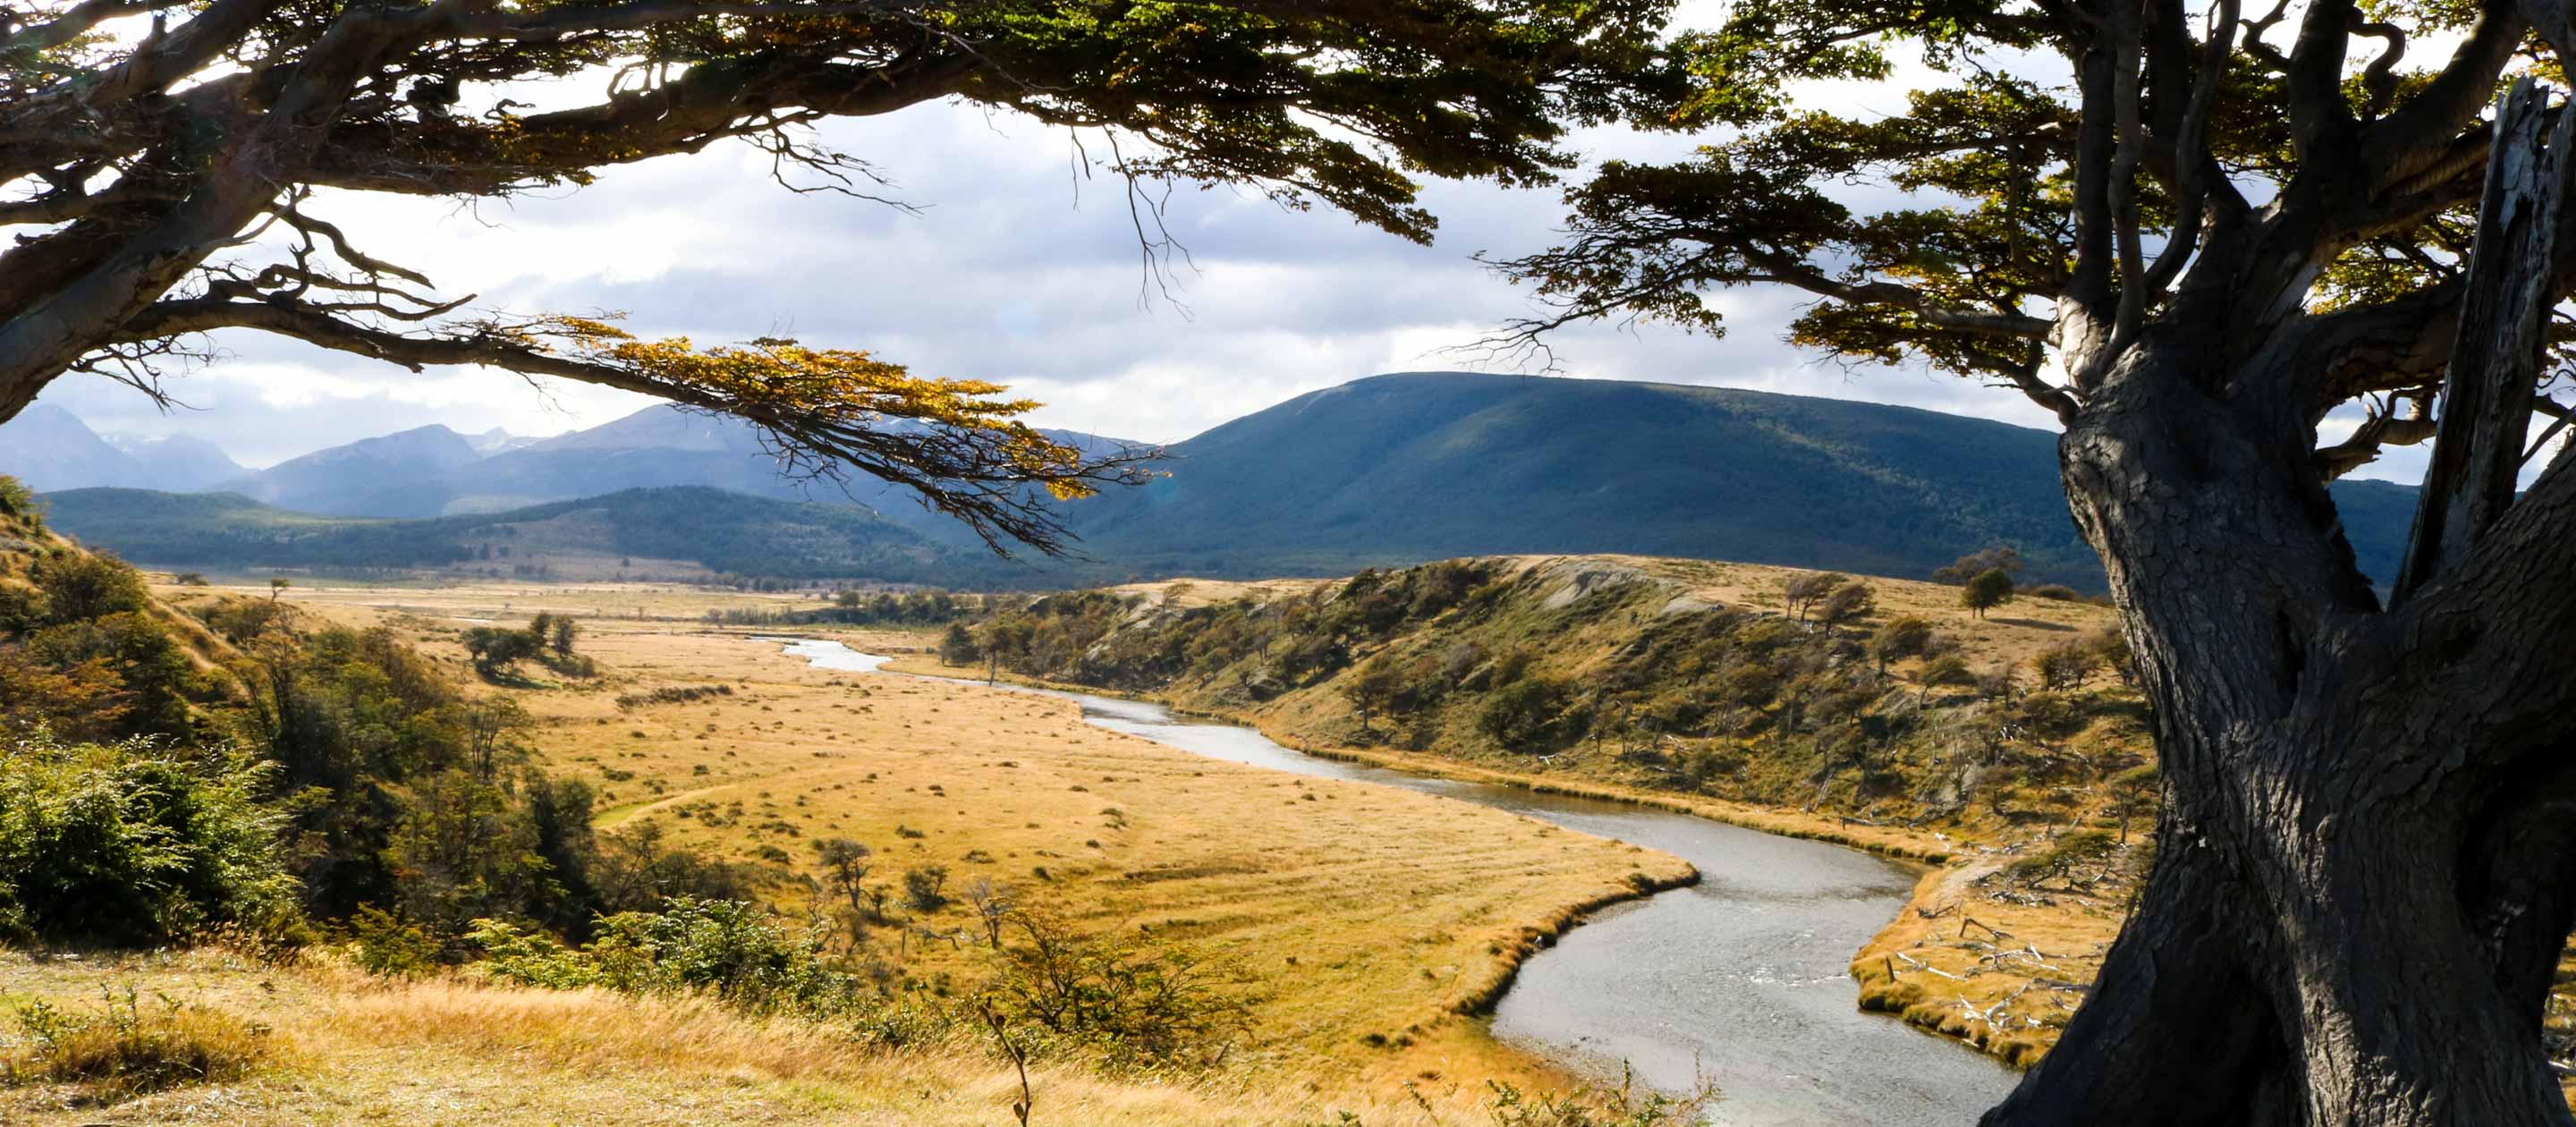 View past trees of Tierra del Fuego in Ushaia, Argentina